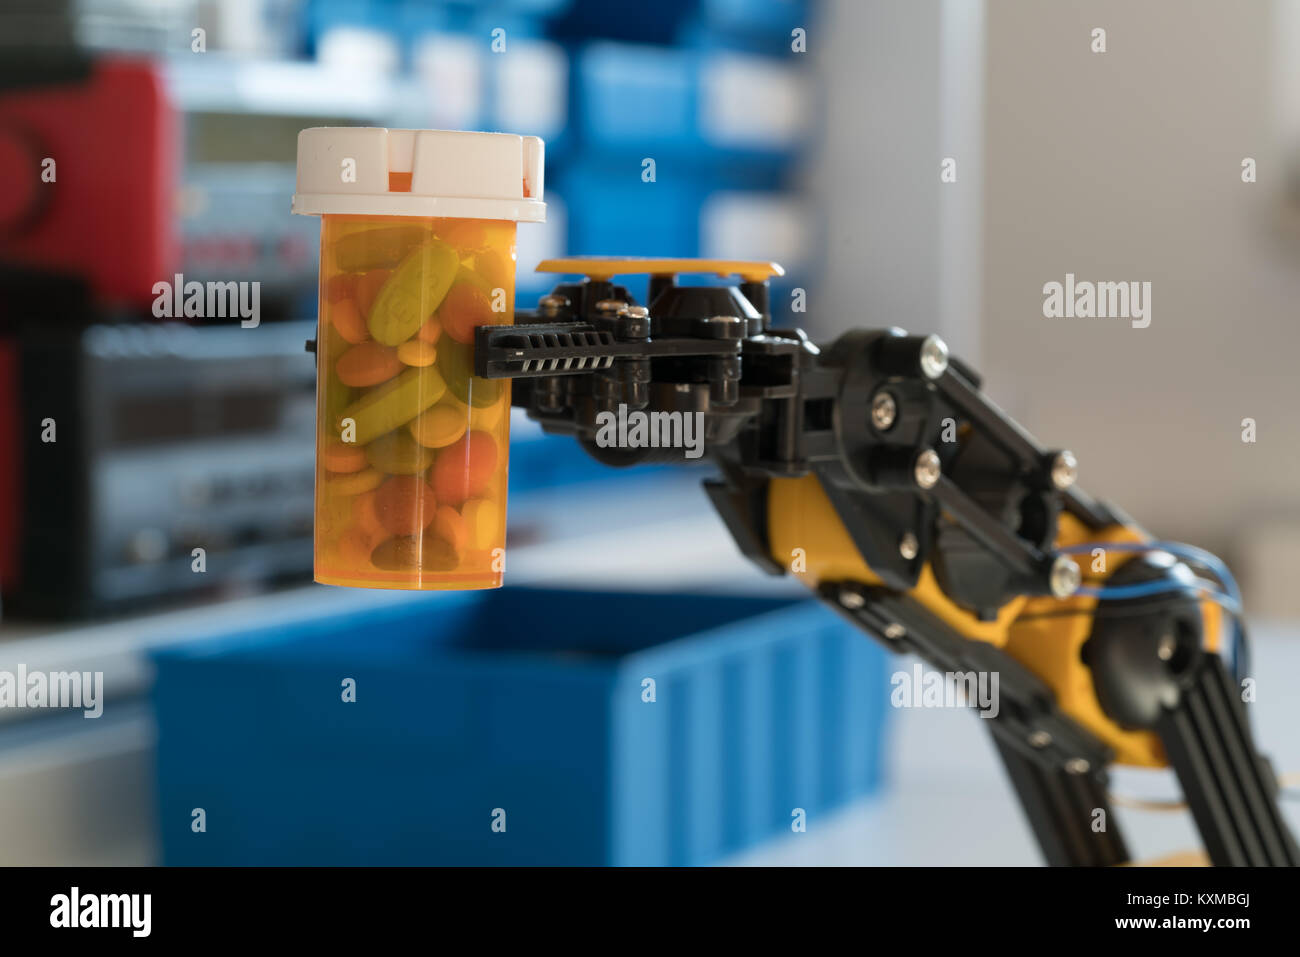 robot arm holds a bottle of pills - Stock Image